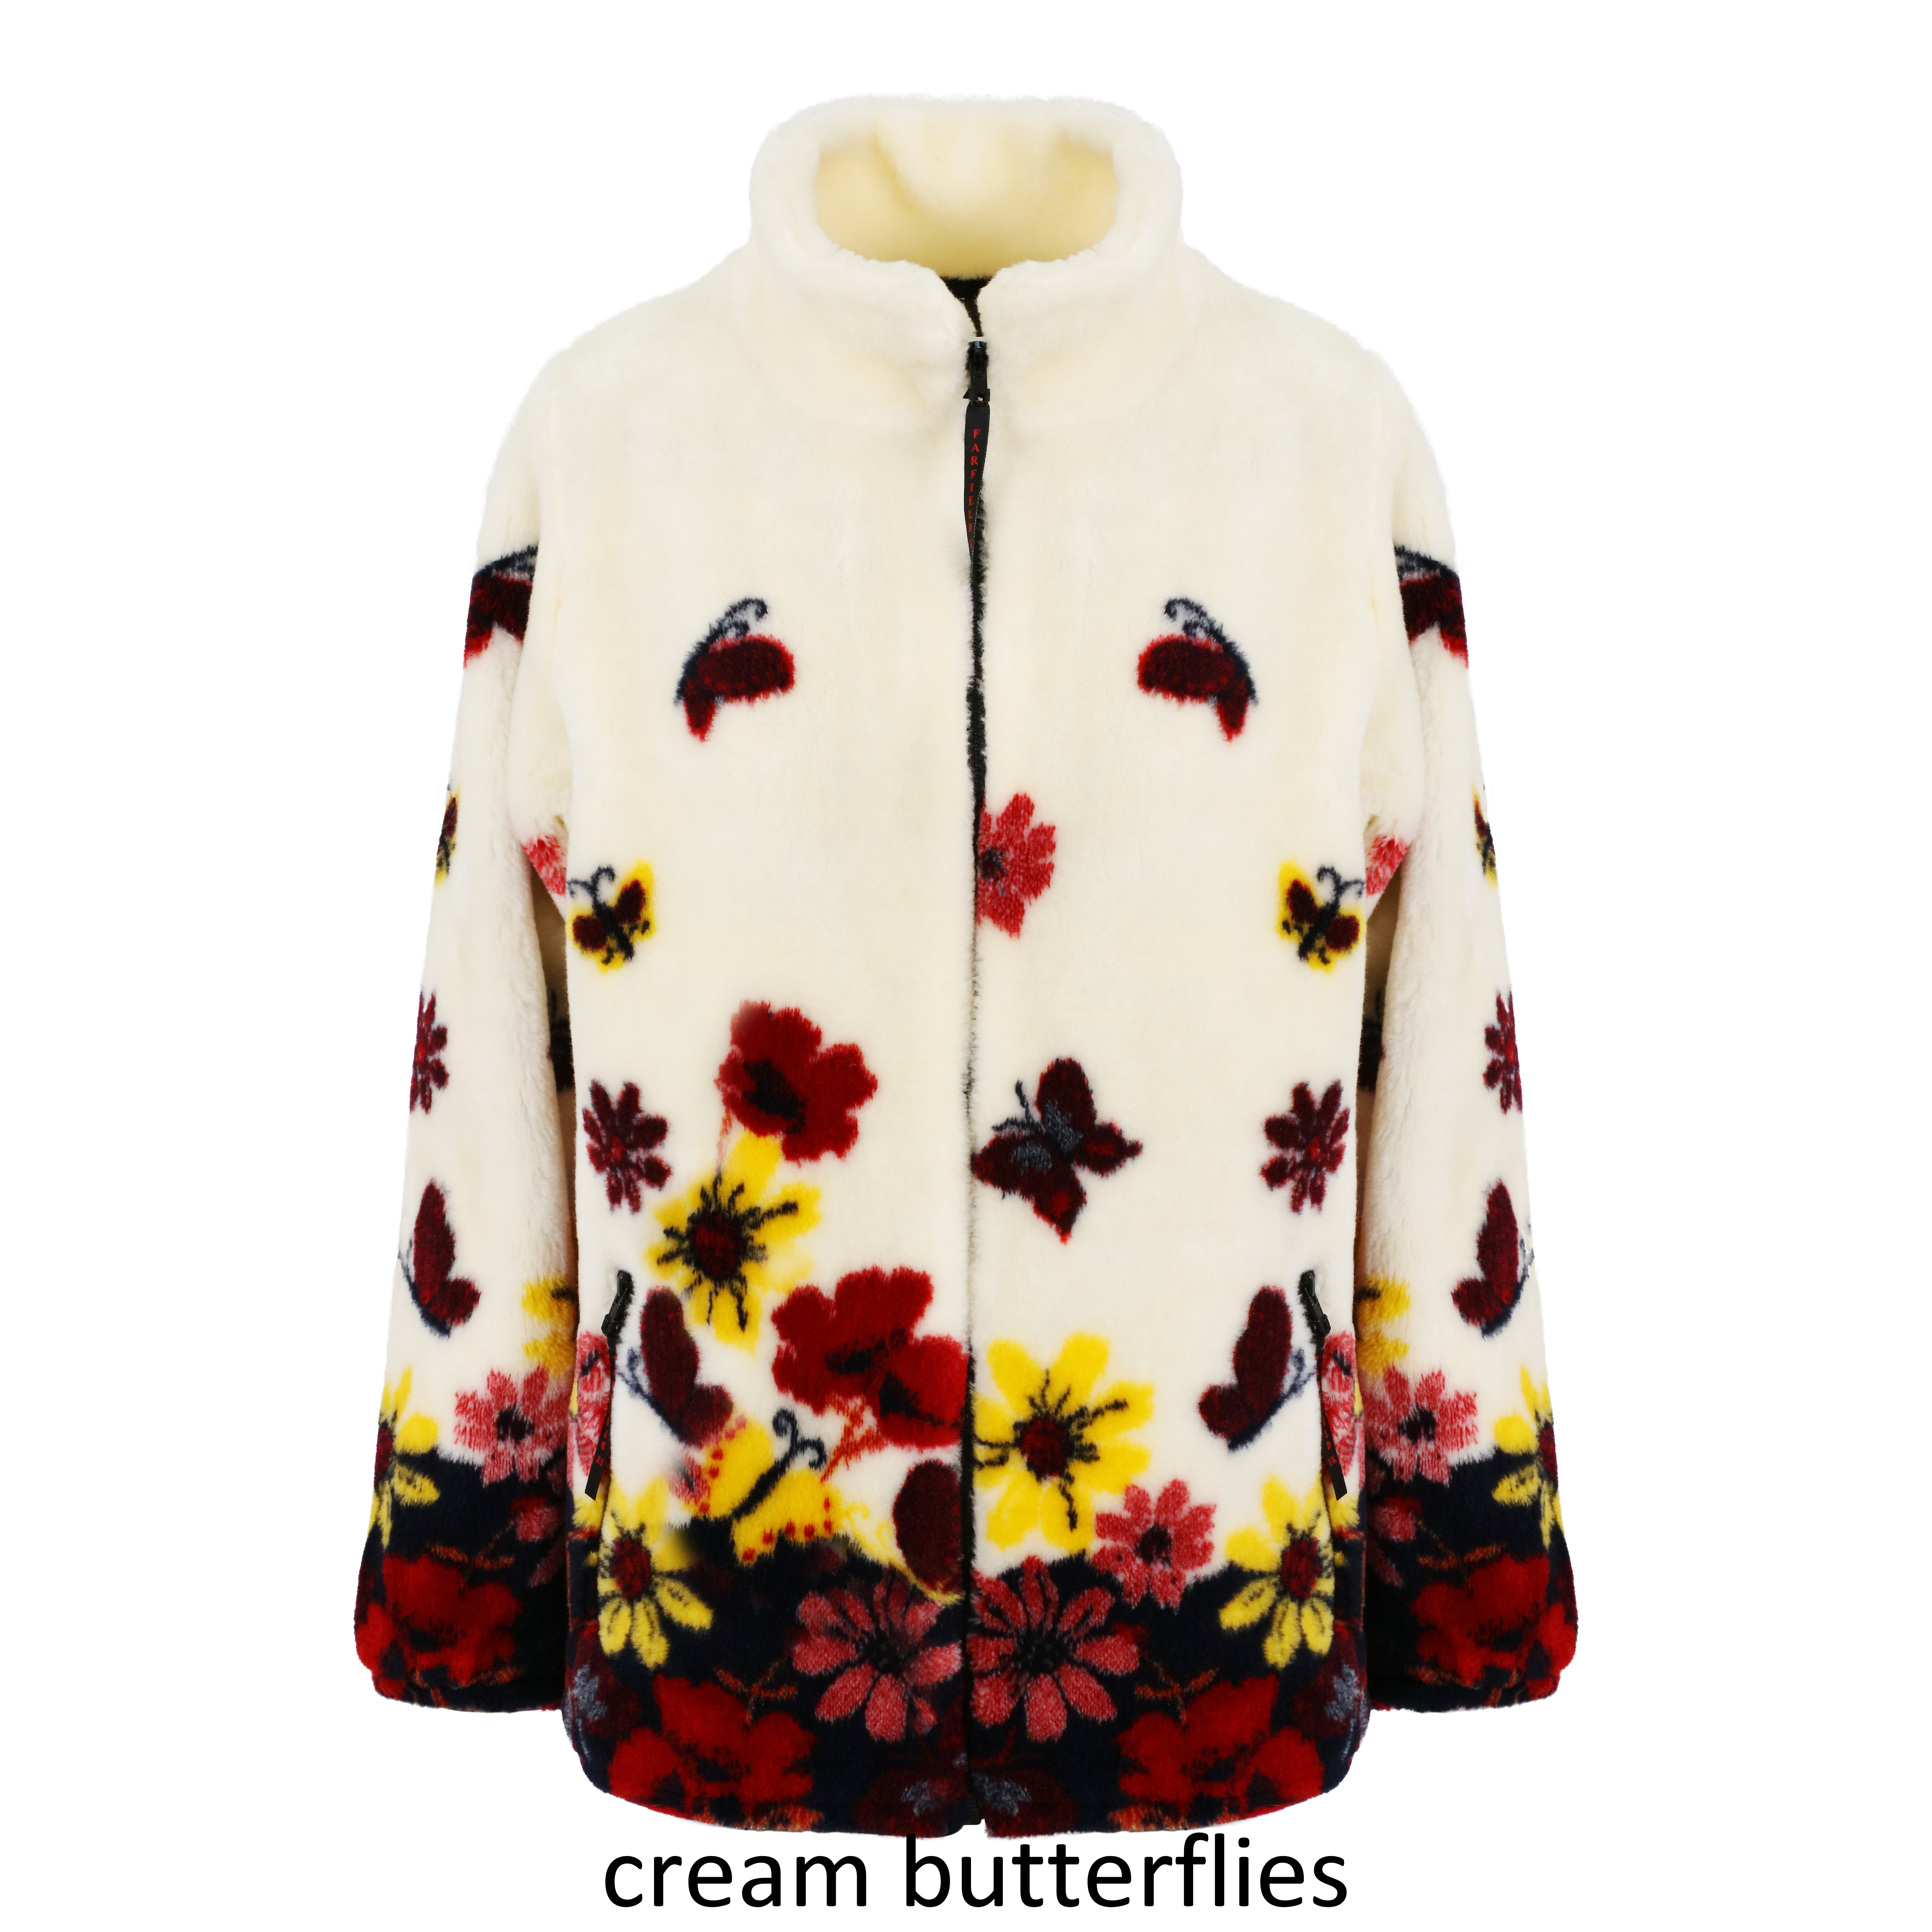 Ladies Micro Velour Fleece Jacket in Cream Butterflies